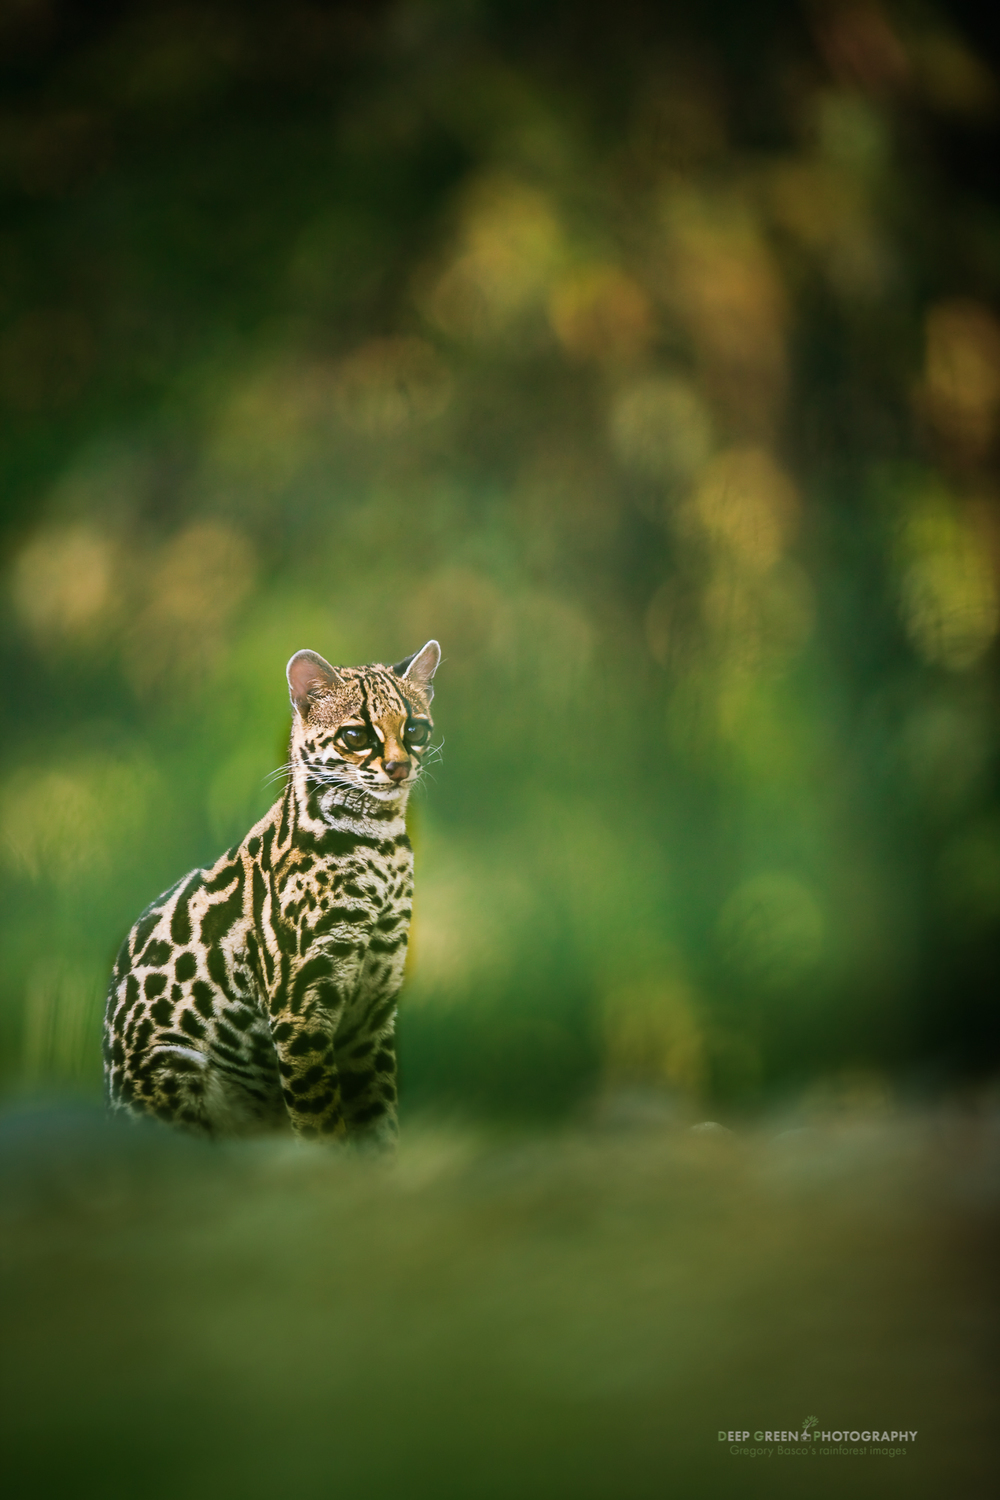 margay, a largely nocturnal cat rarely seen during the day